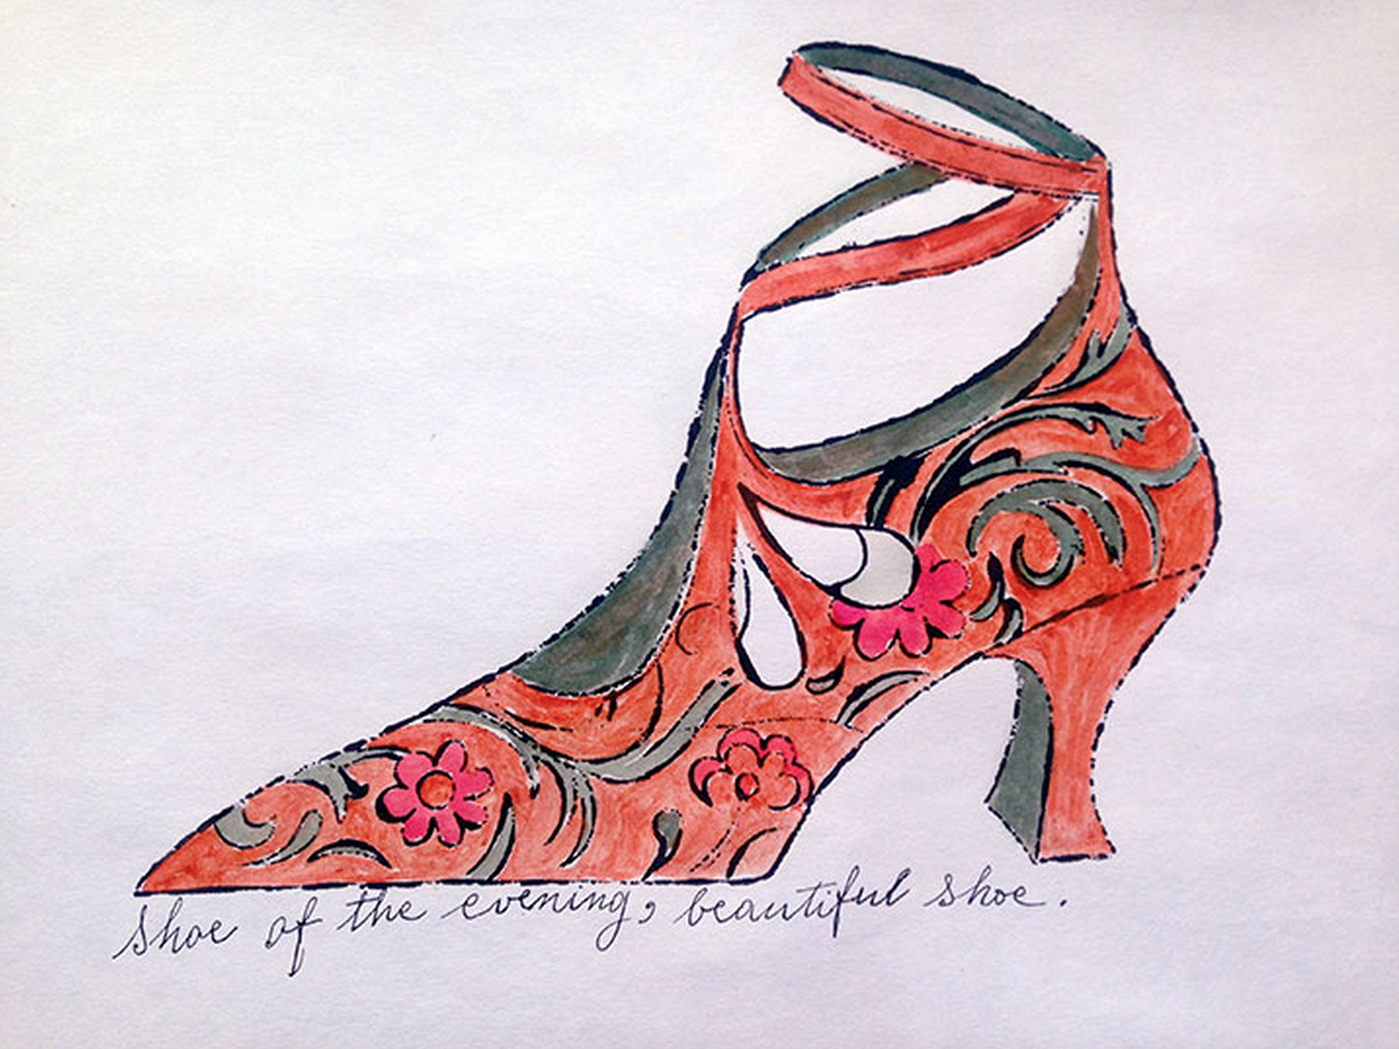 Shoe of the Evening, Beautiful Shoe – Shoe Portfolio by Andy Warhol